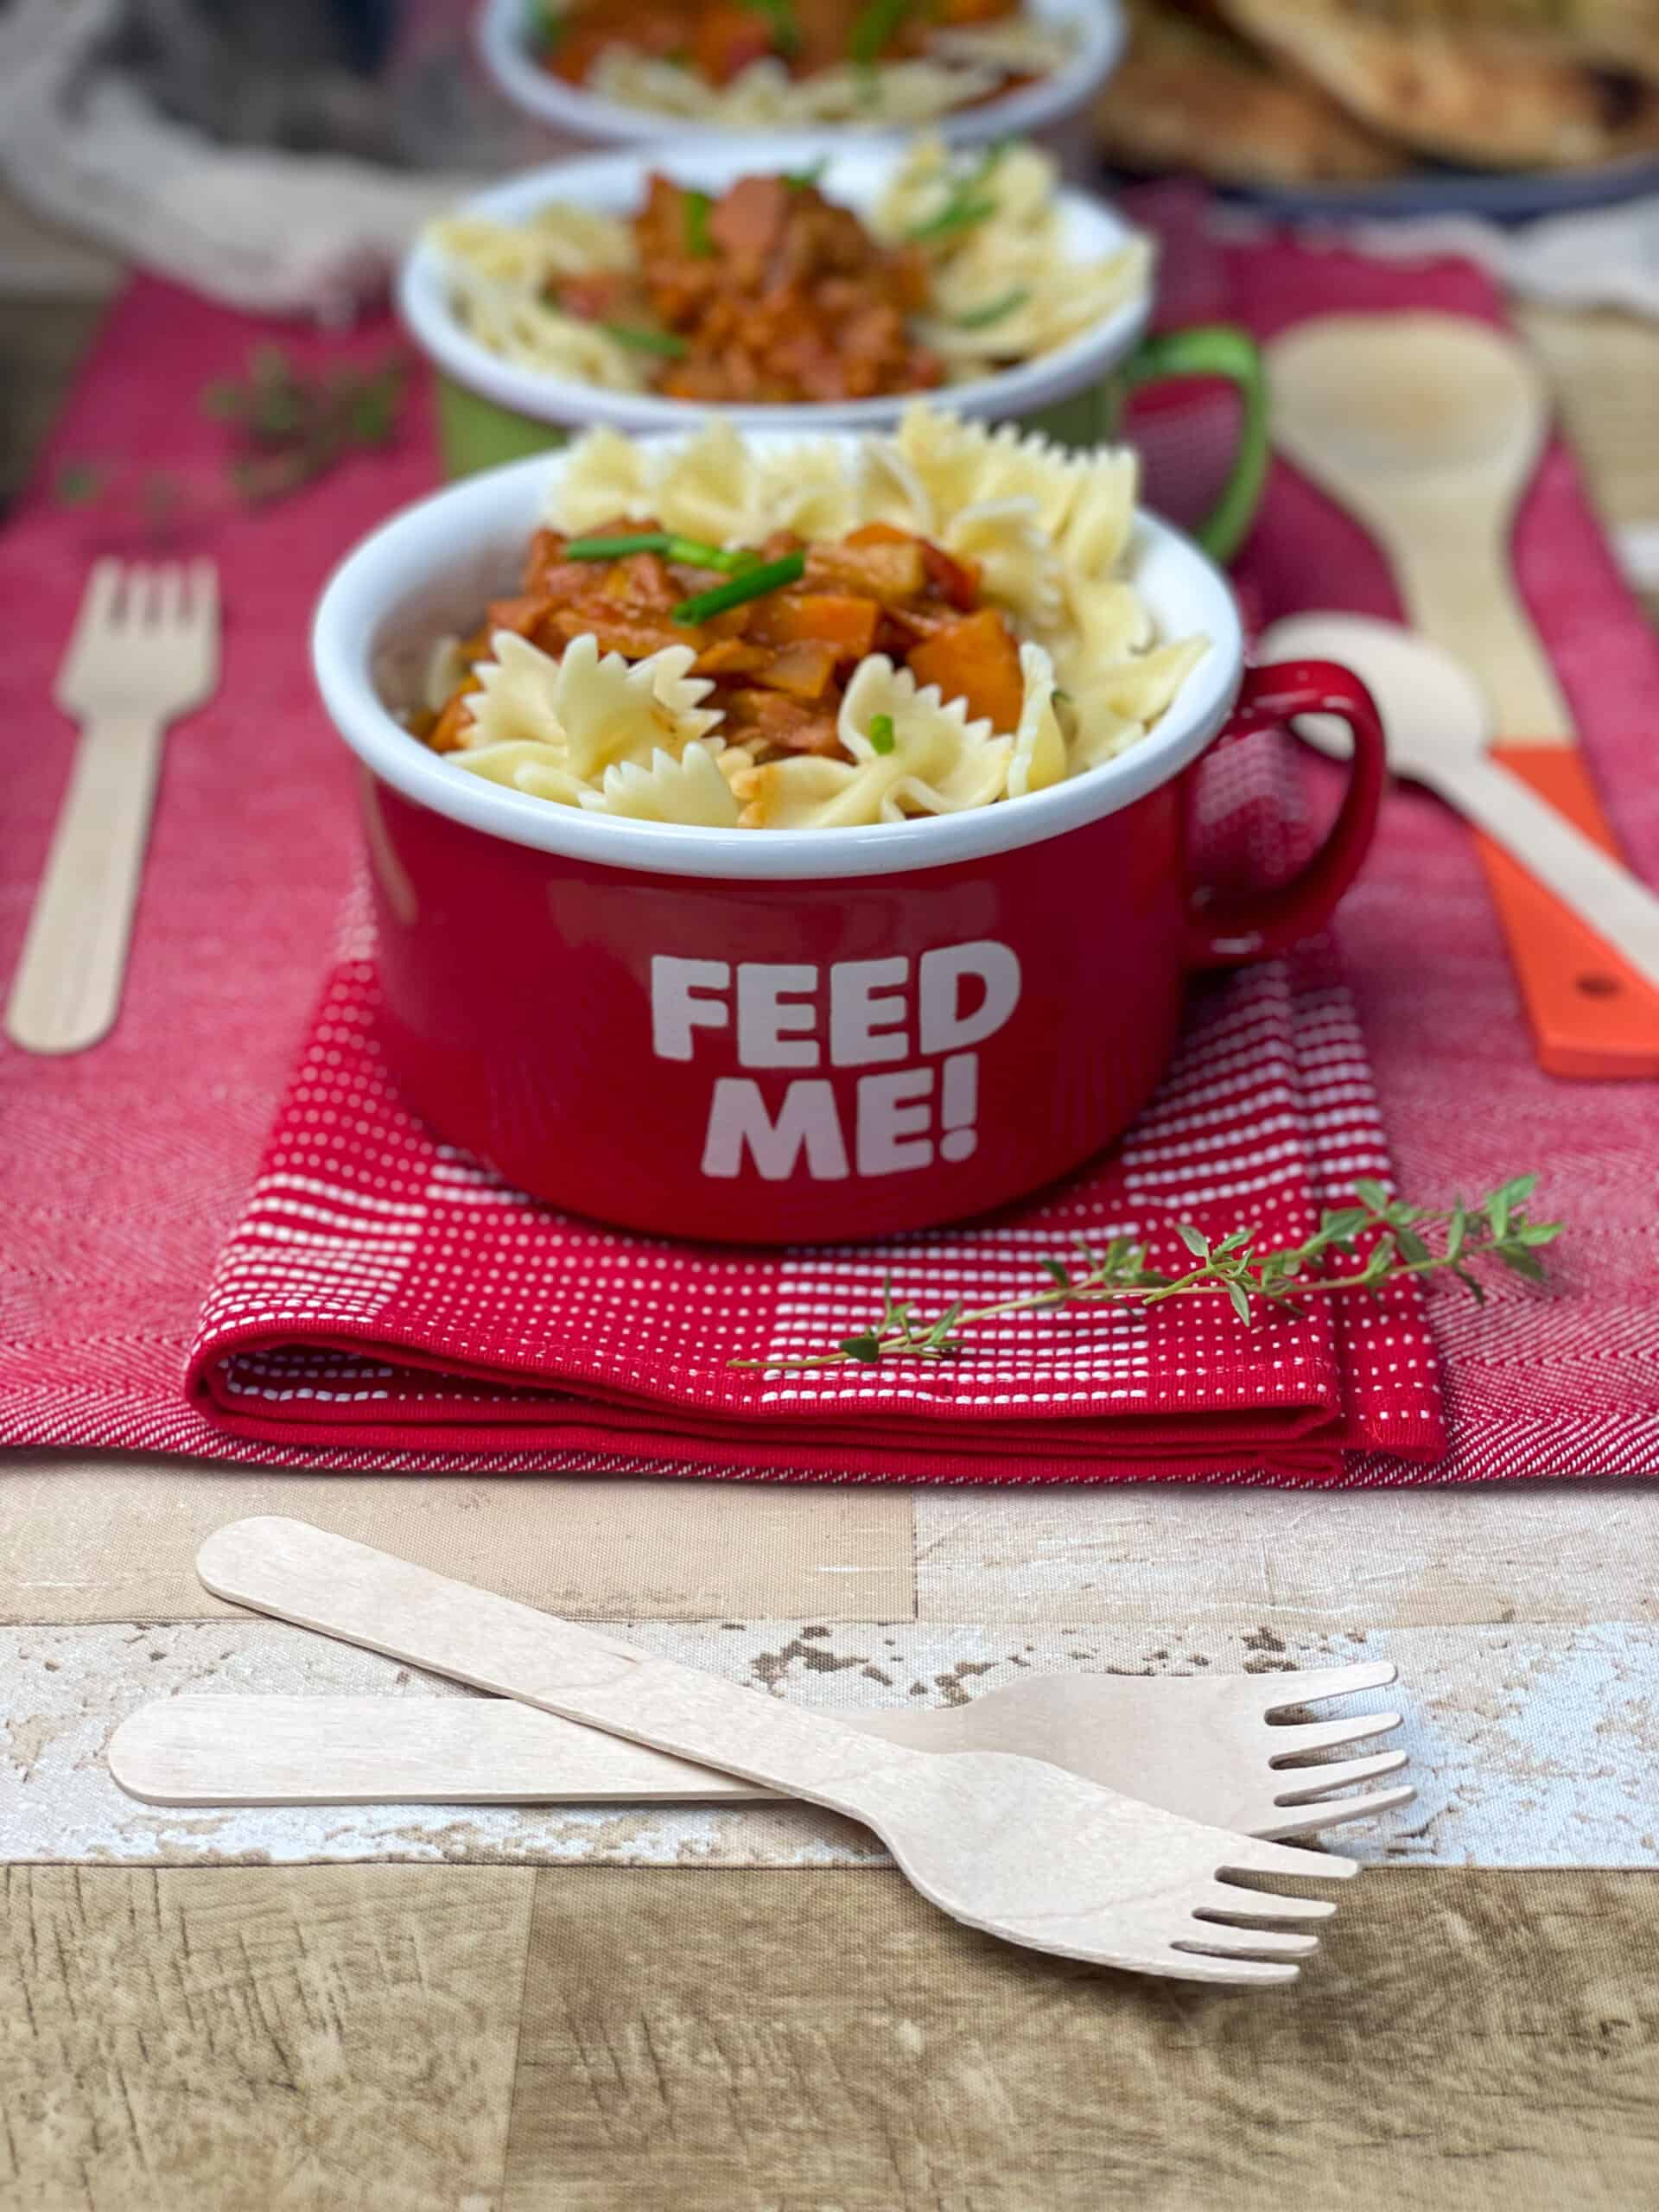 large red mug with 'feed me' text, forks to side, garlic bread in distance, red background.